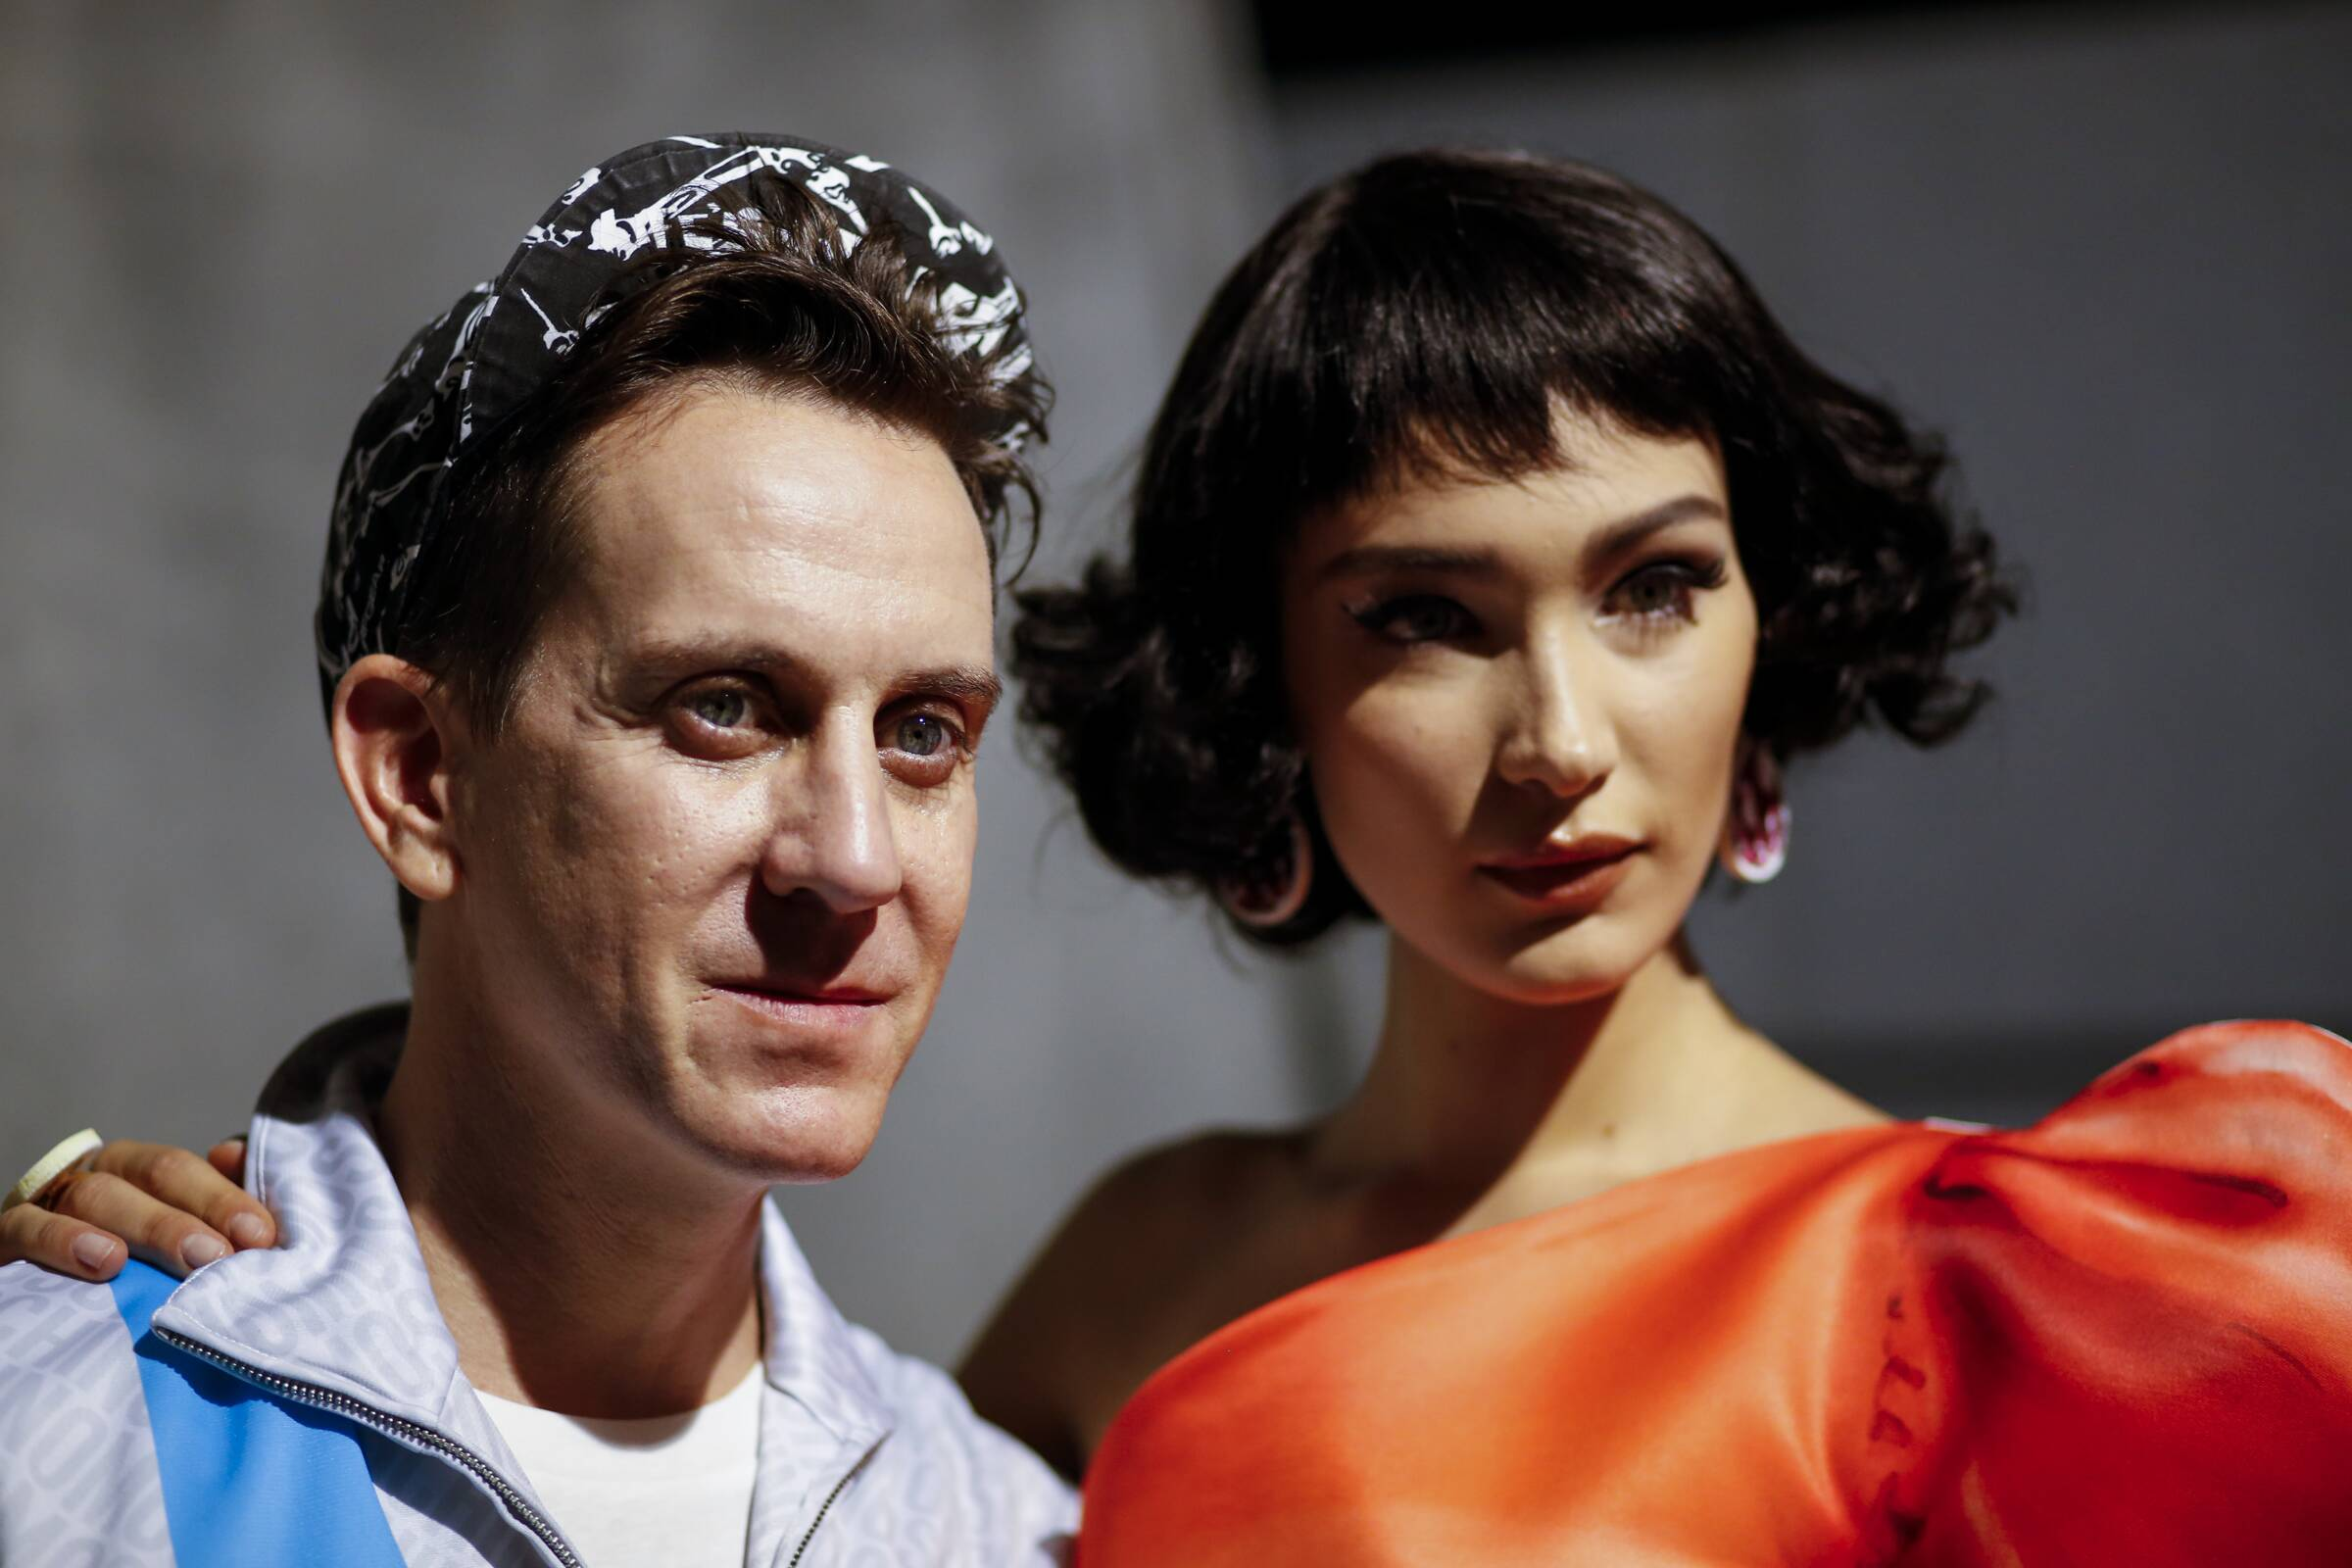 Jeremy Scott and Model